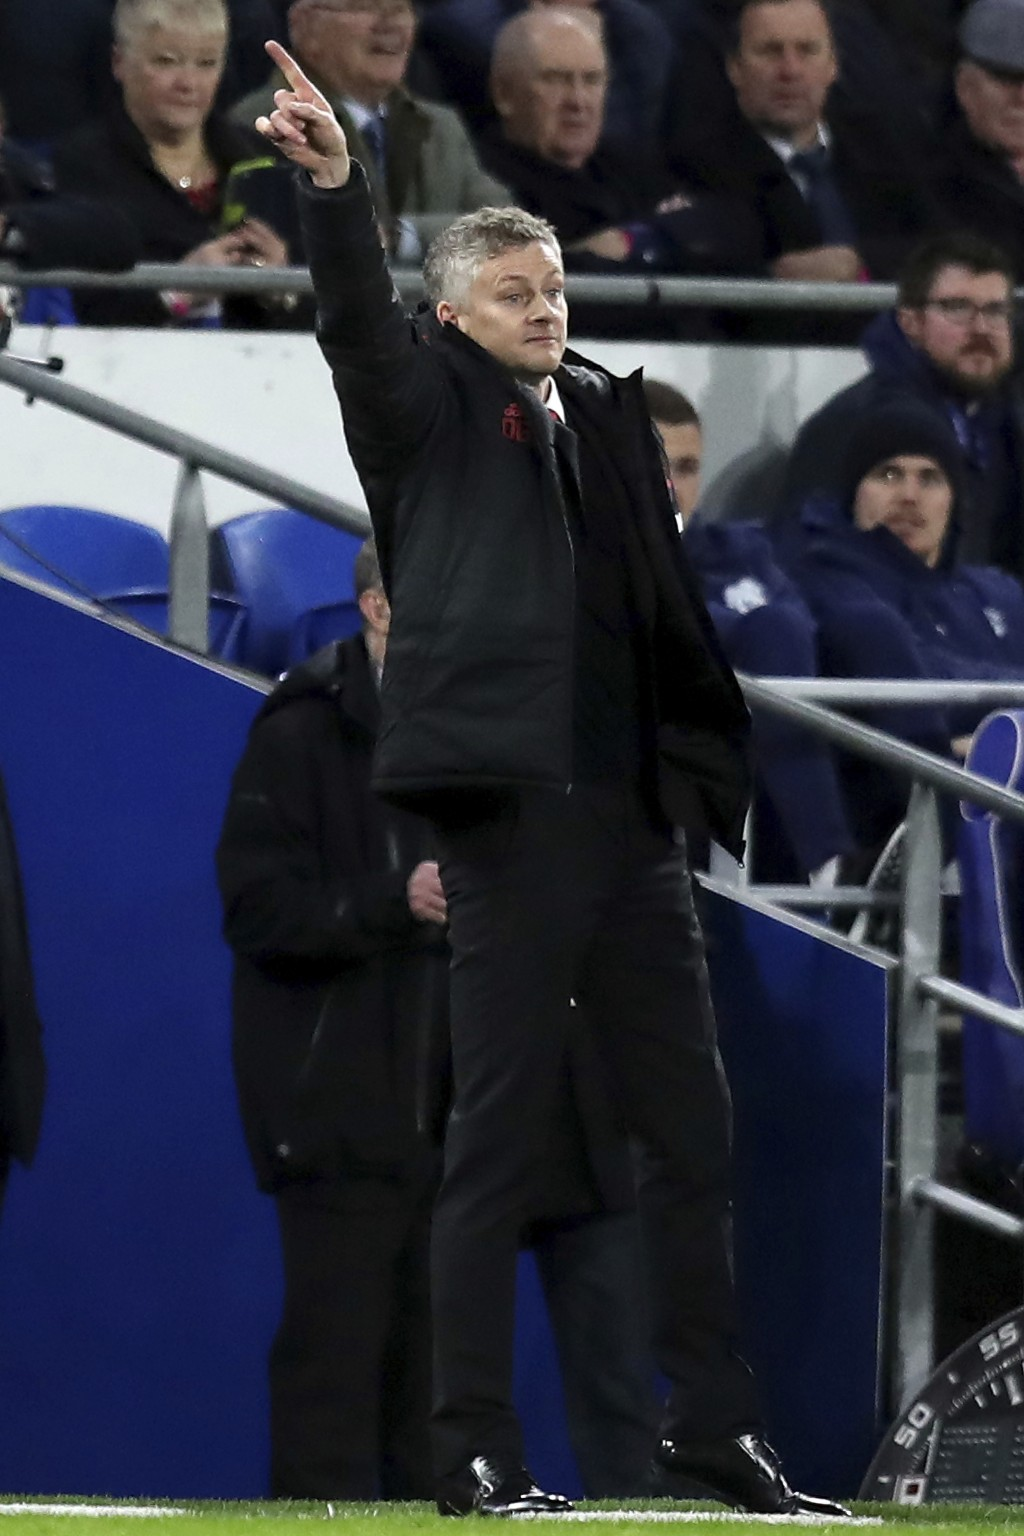 Manchester United manager Ole Gunnar Solskjaer gives instructions to his players during the English Premier League match between Cardiff City and Manc...